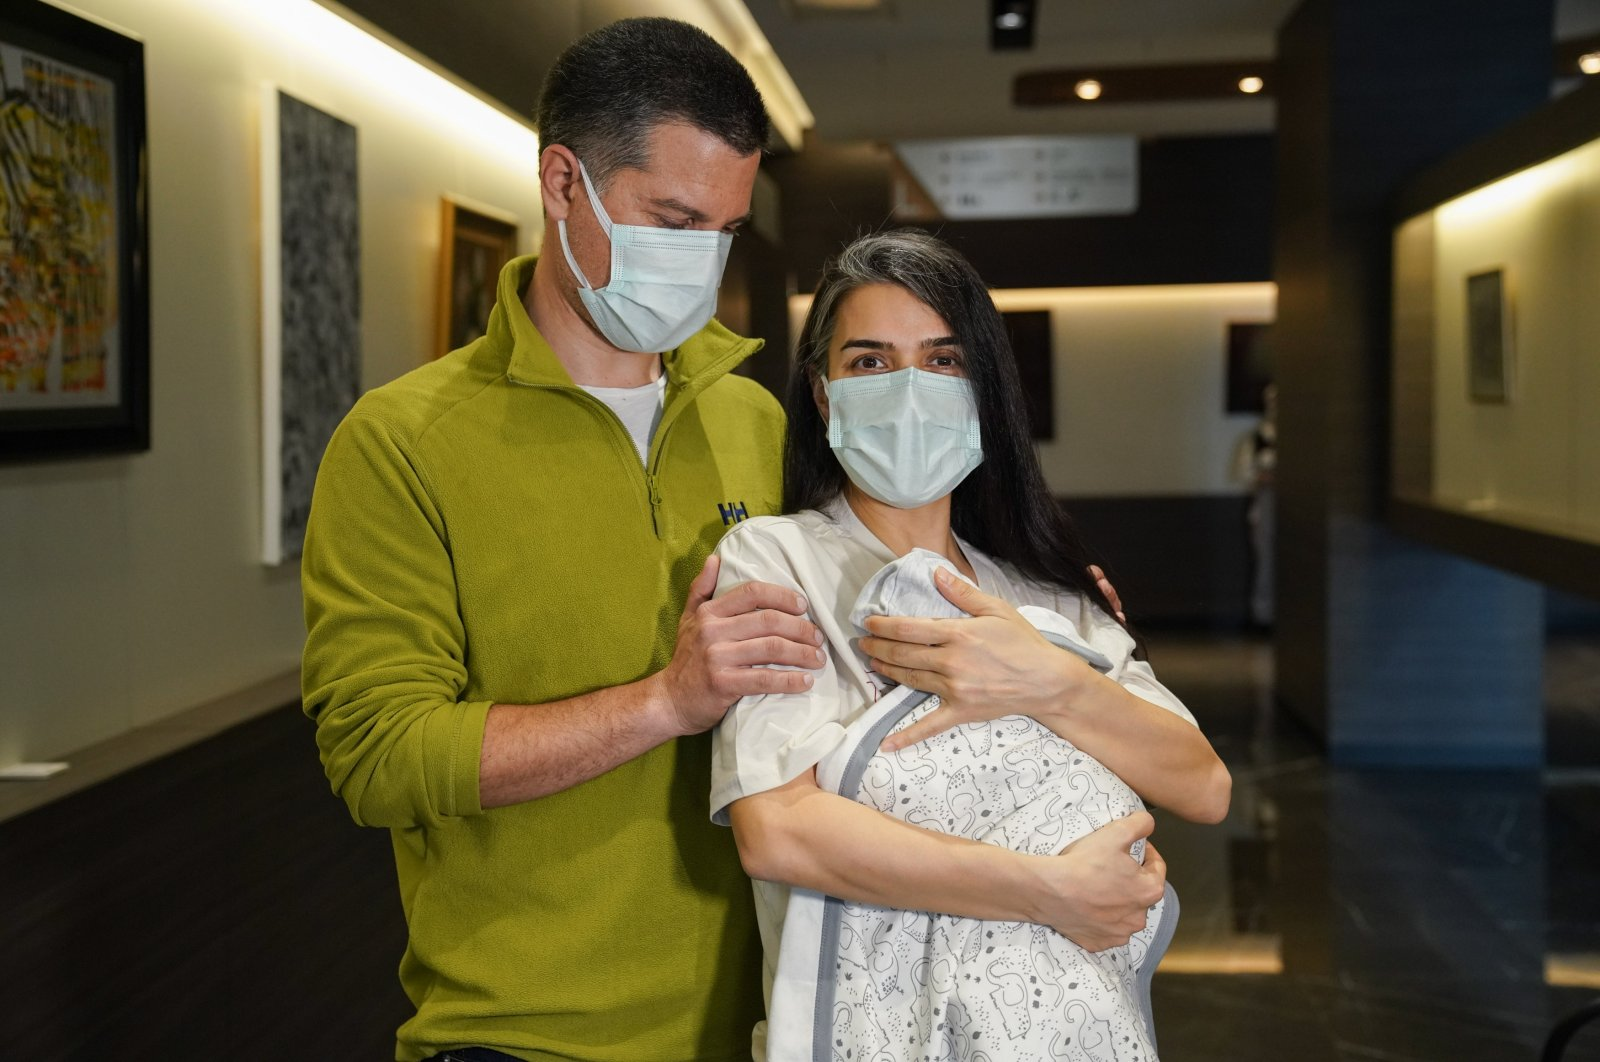 Deniz Giray (L) with mother Seda Giray pose for a photo with their newborn baby Devin Ege inside a private hospital in Istanbul, Turkey, March 25, 2021. (DHA Photo)